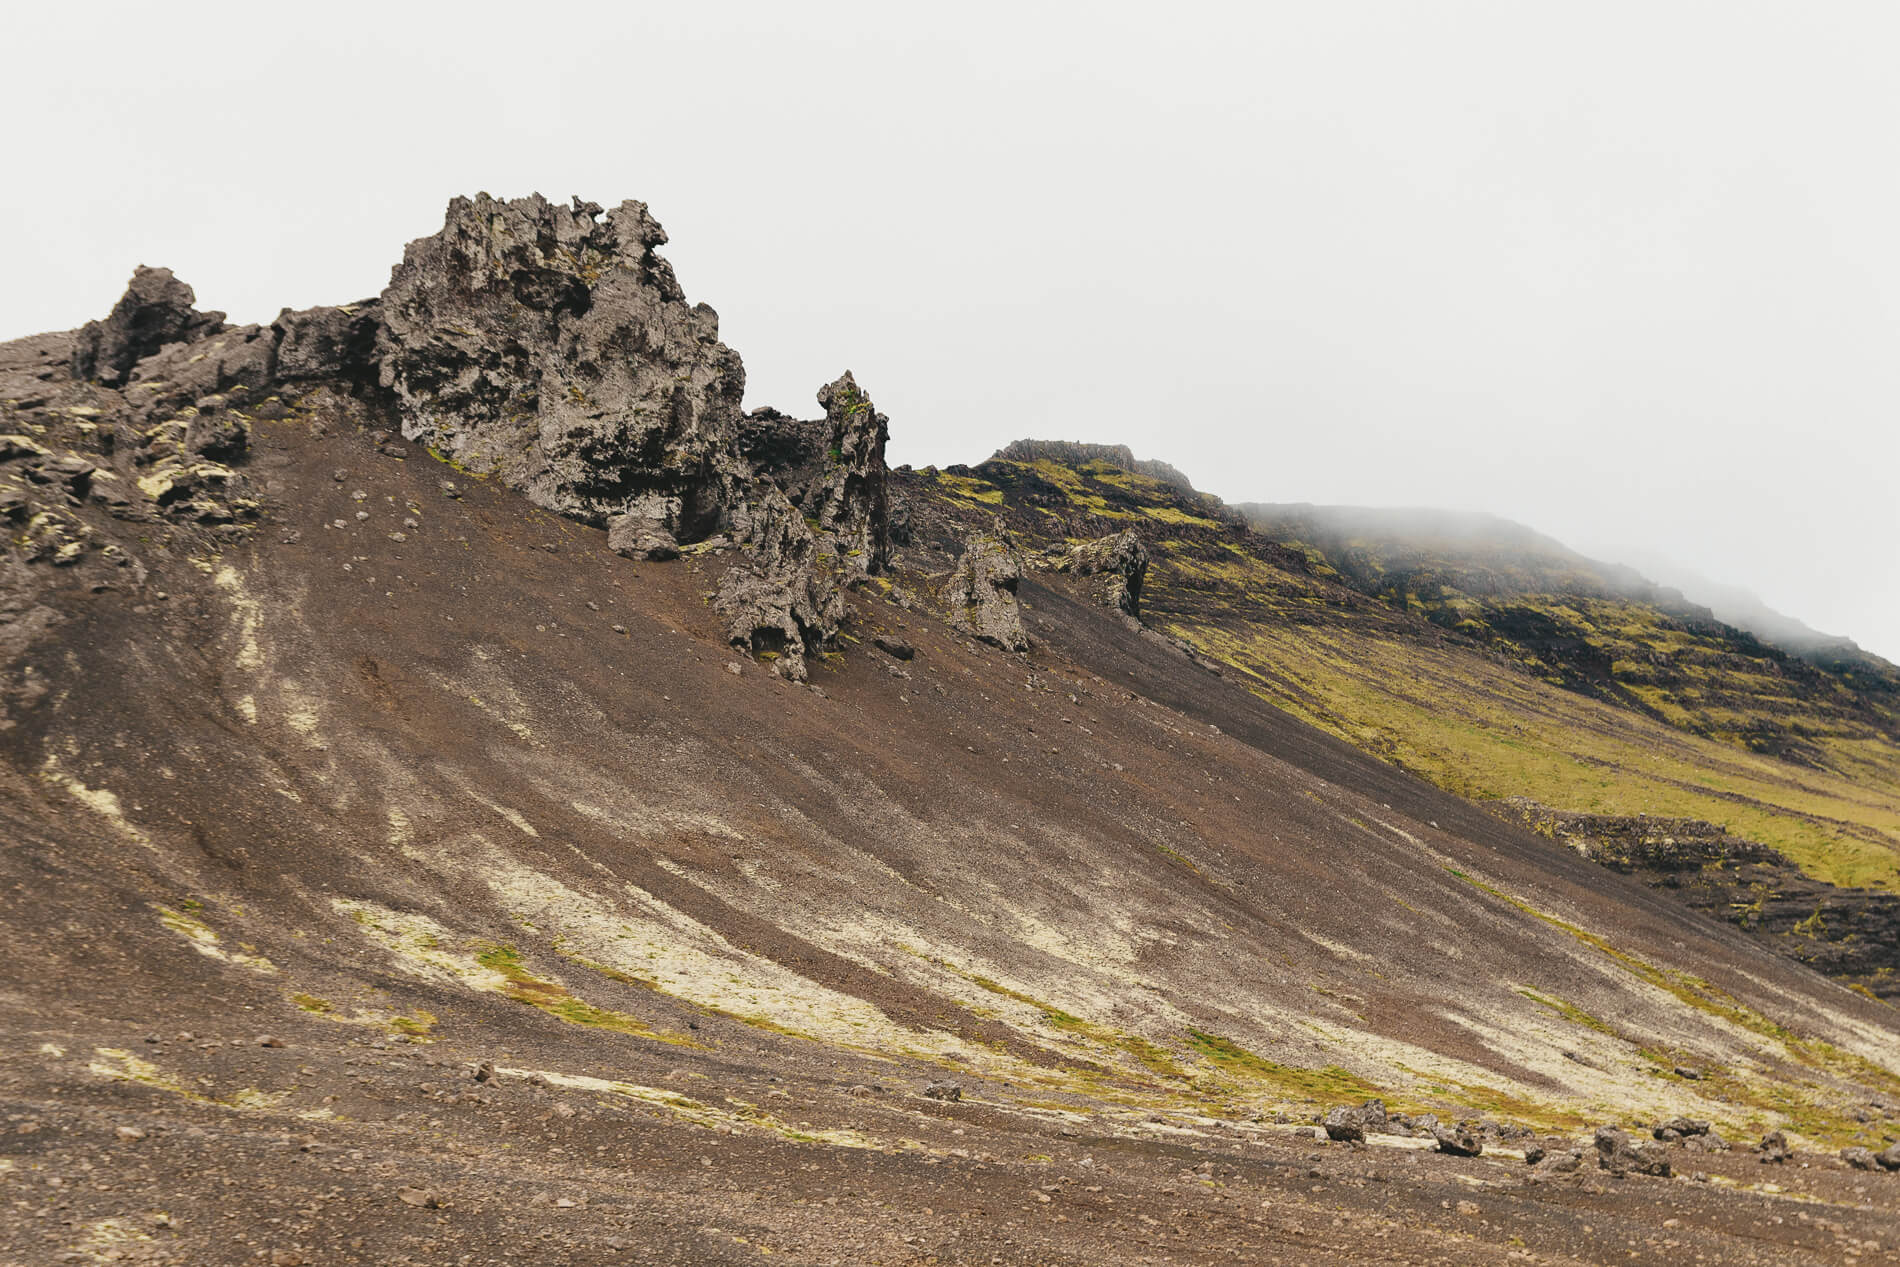 west iceland, iceland itinerary, off the beaten path iceland